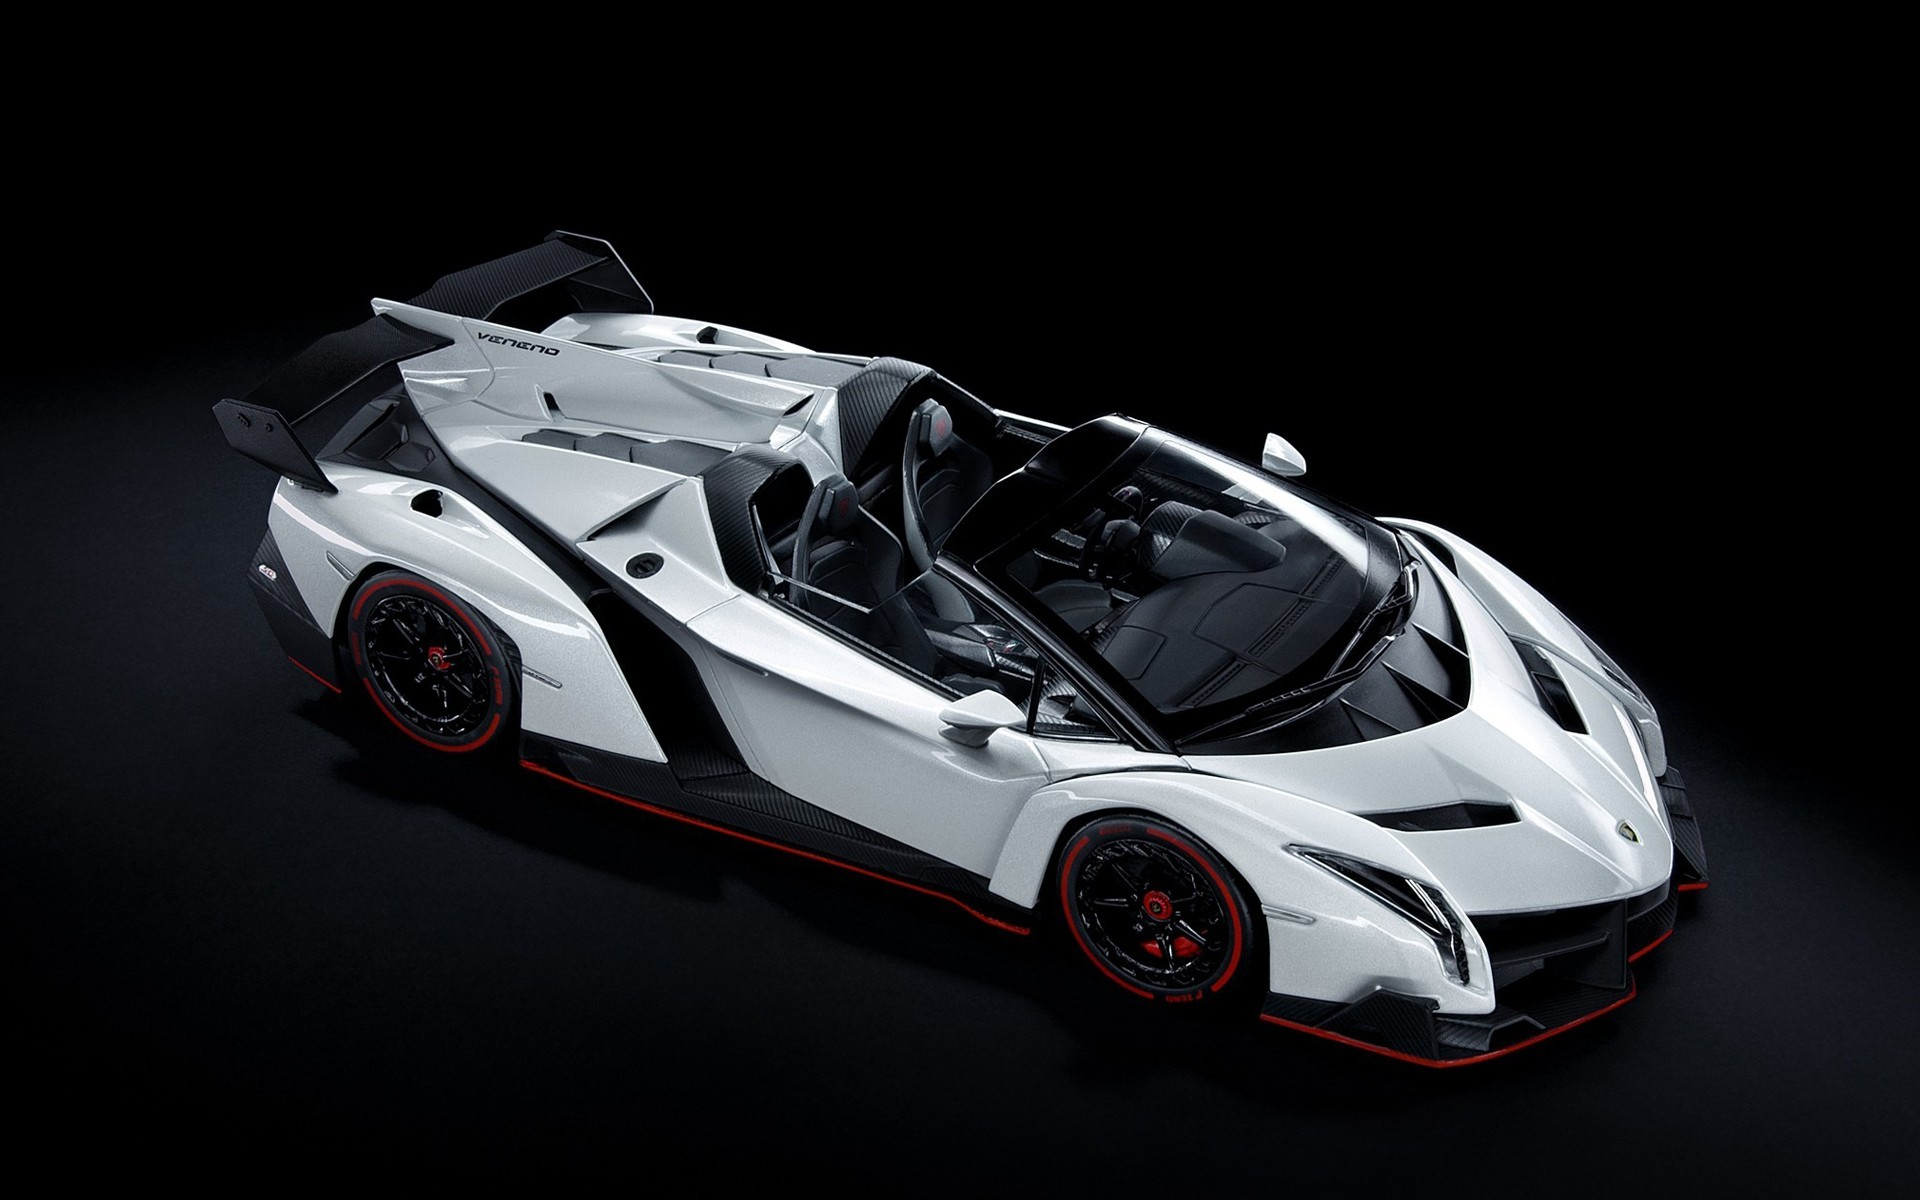 1920x1200 Lamborghini Veneno White Car Wallpaper HD